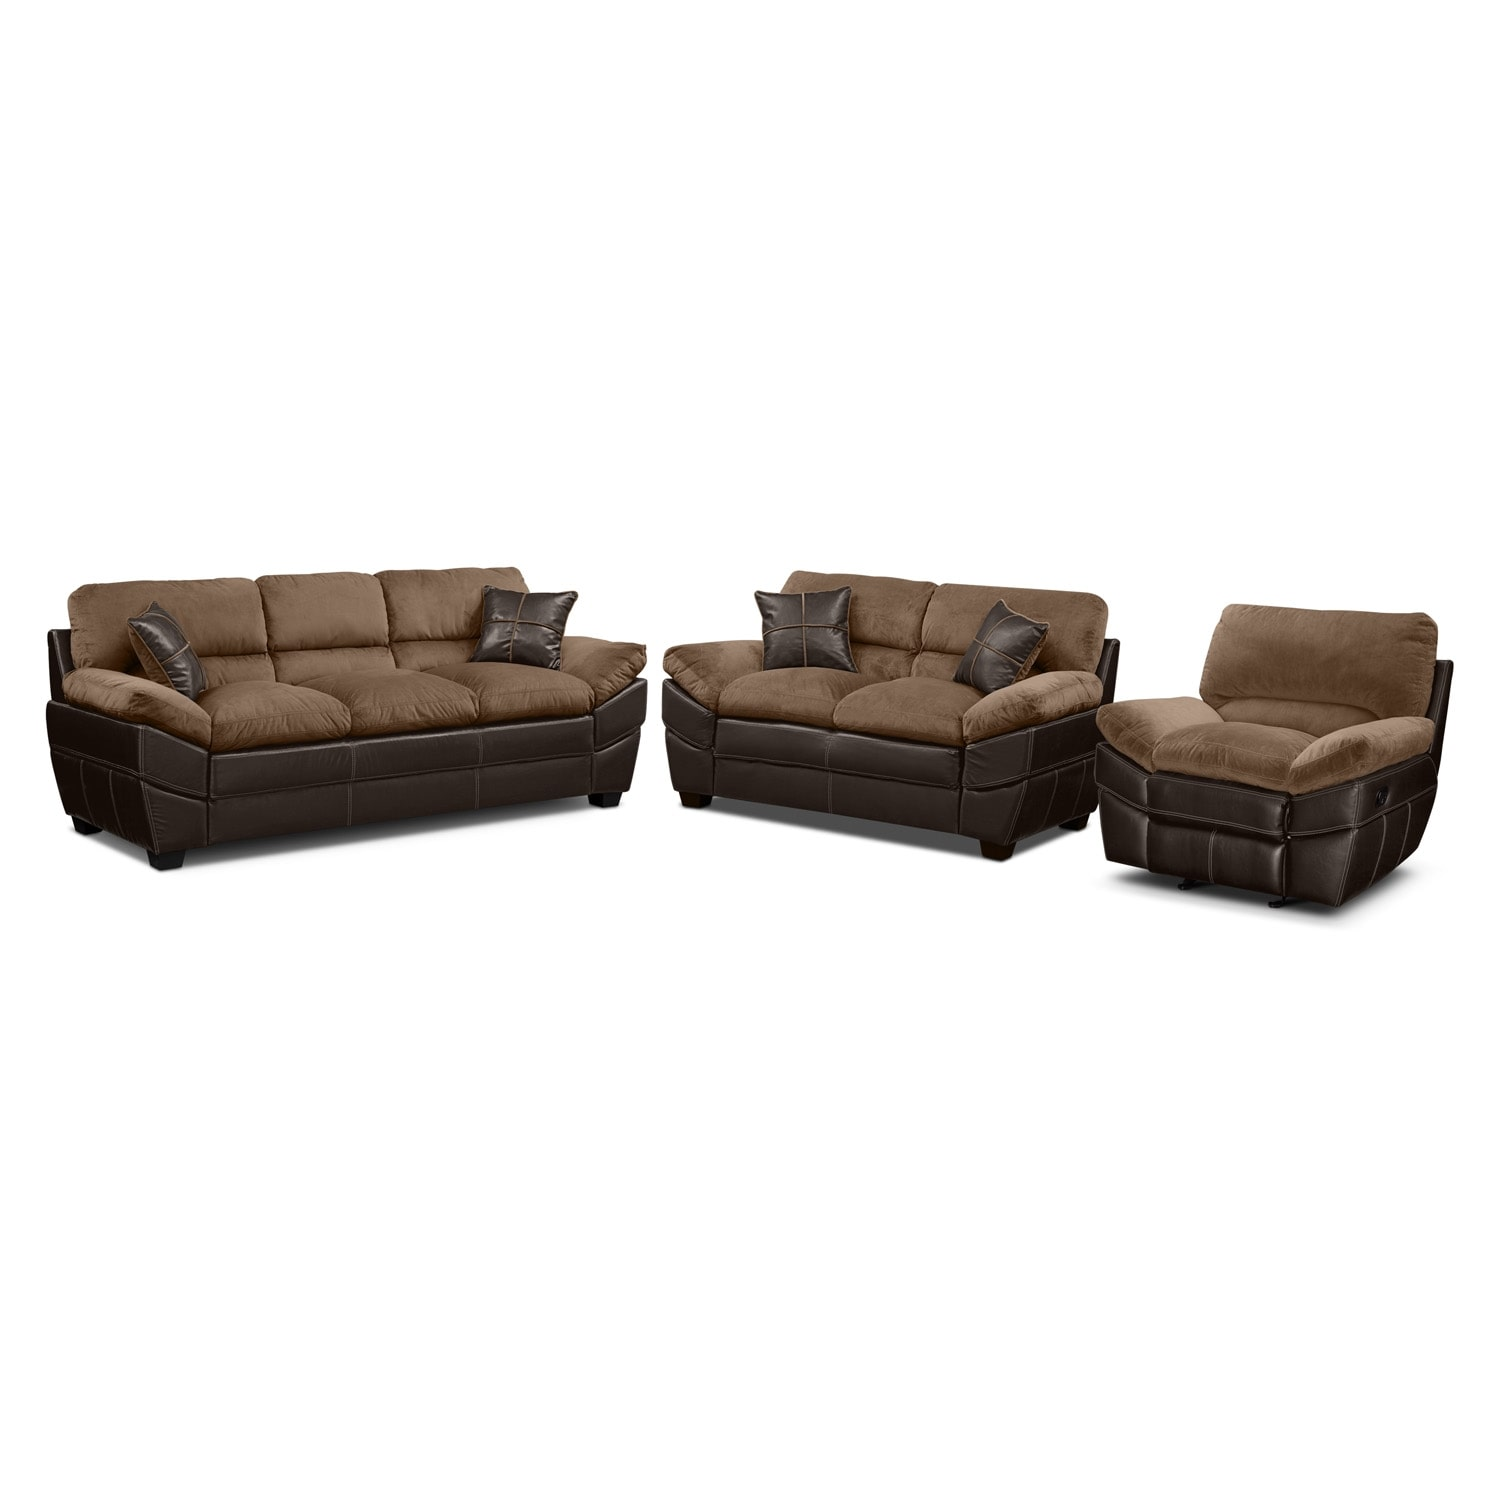 Chandler Beige 3 Pc. Living Room